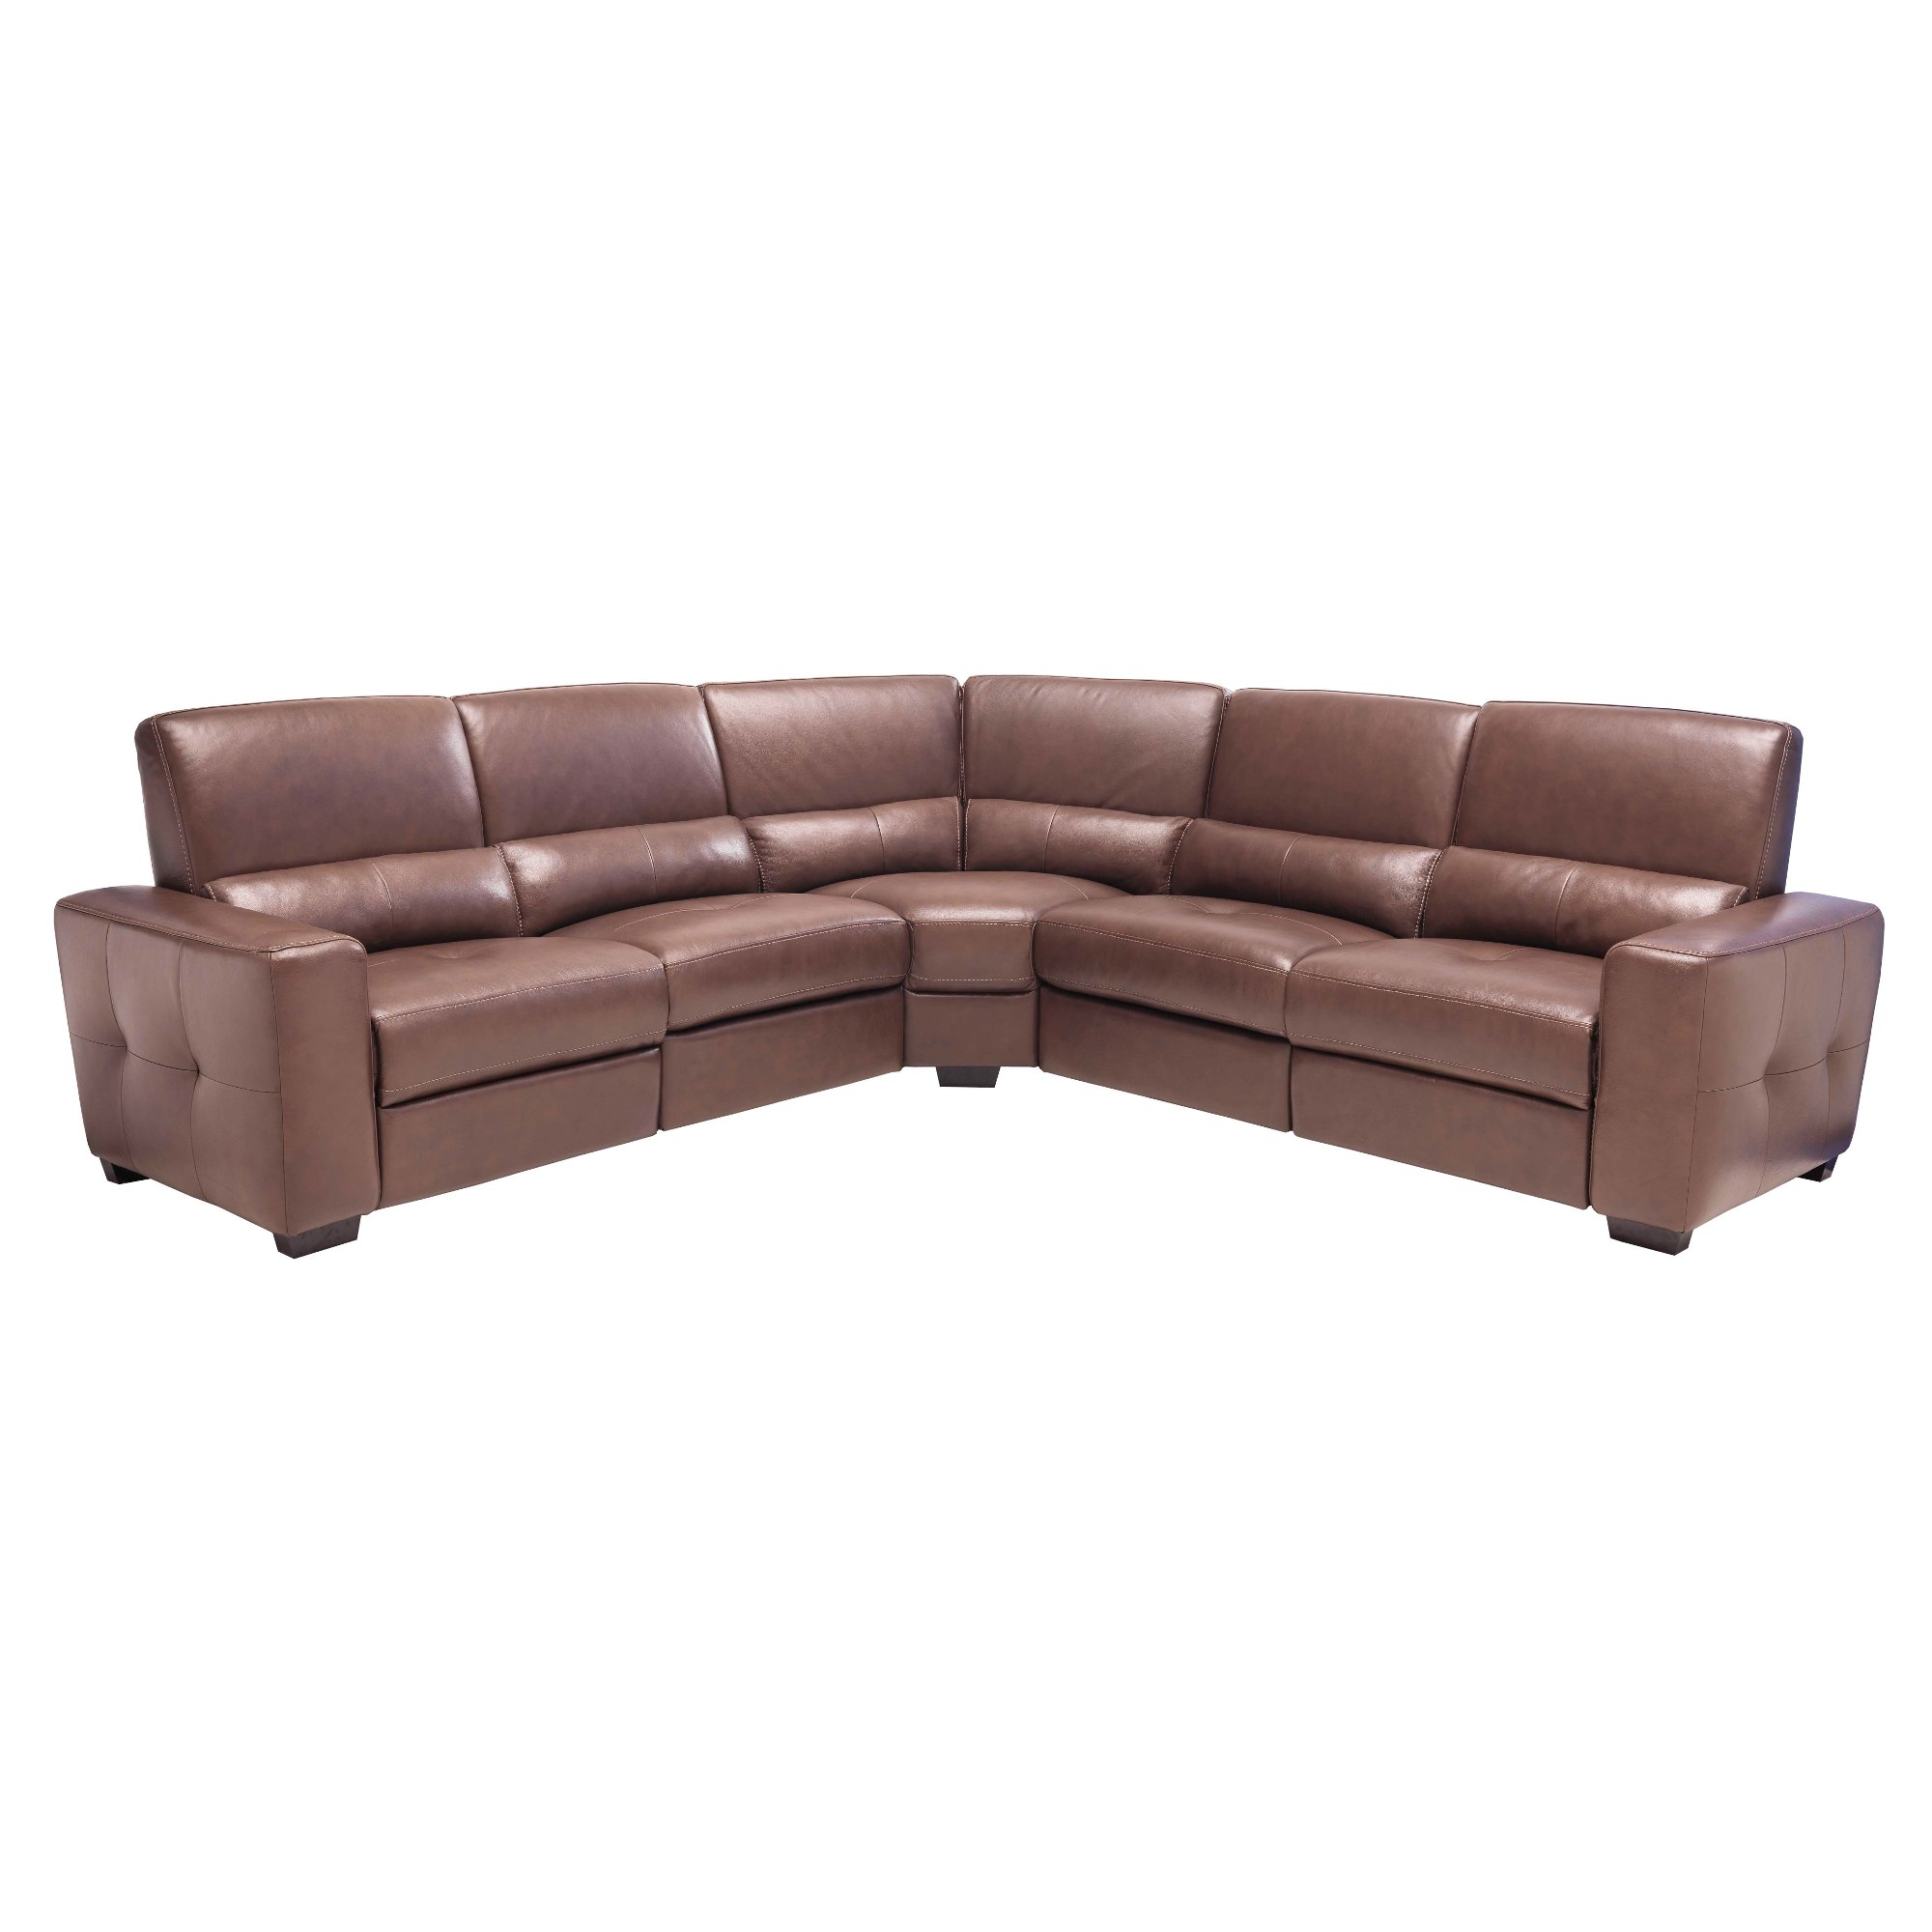 Brown leather 5 piece power reclining sectional for Eurodesign brown leather 5 piece sectional sofa set